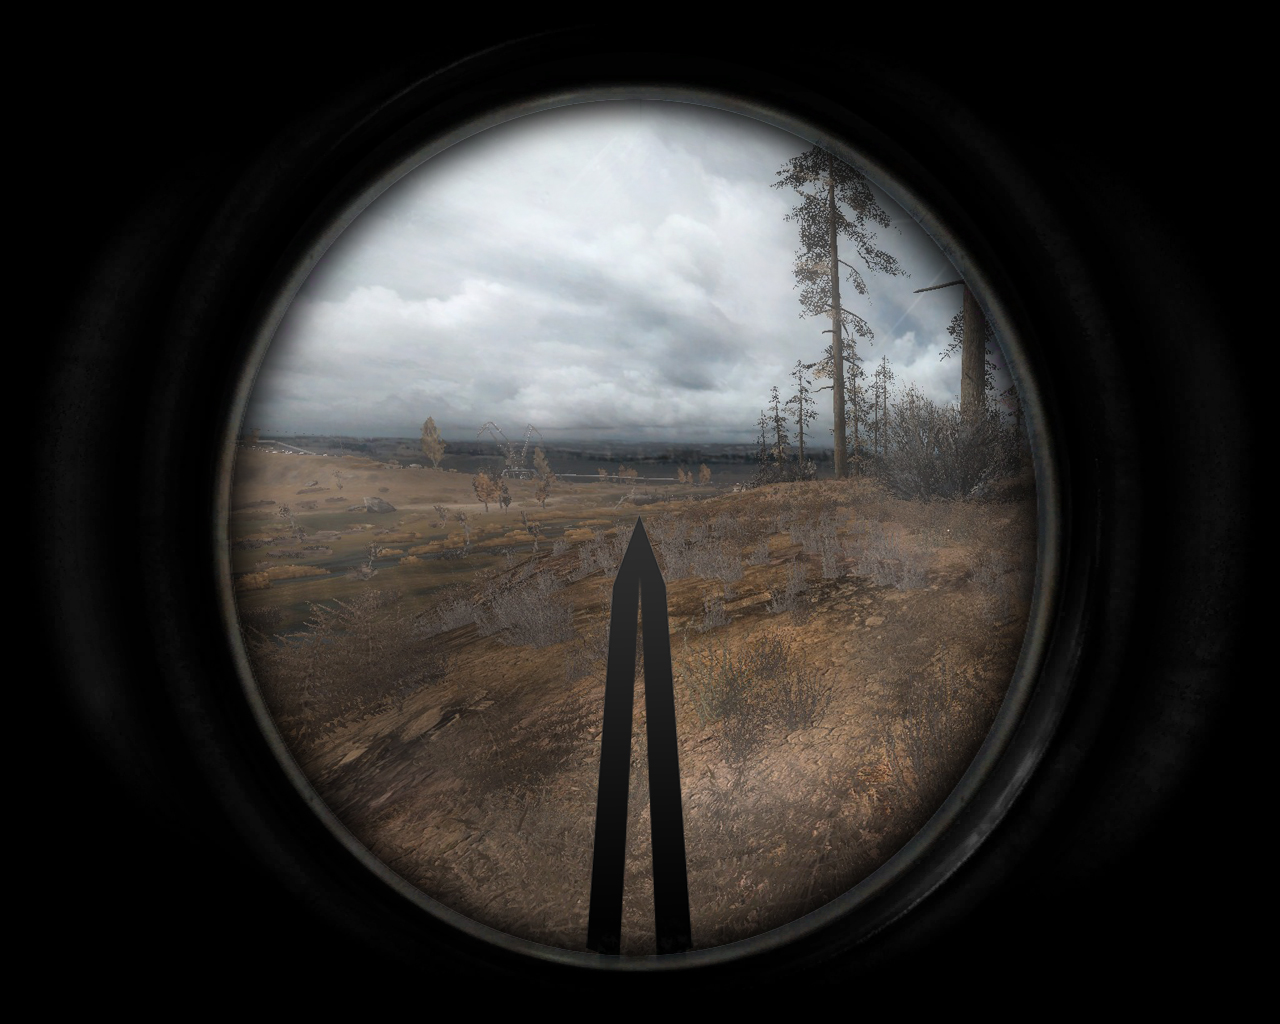 new scope reticle designs image misery mod for stalk